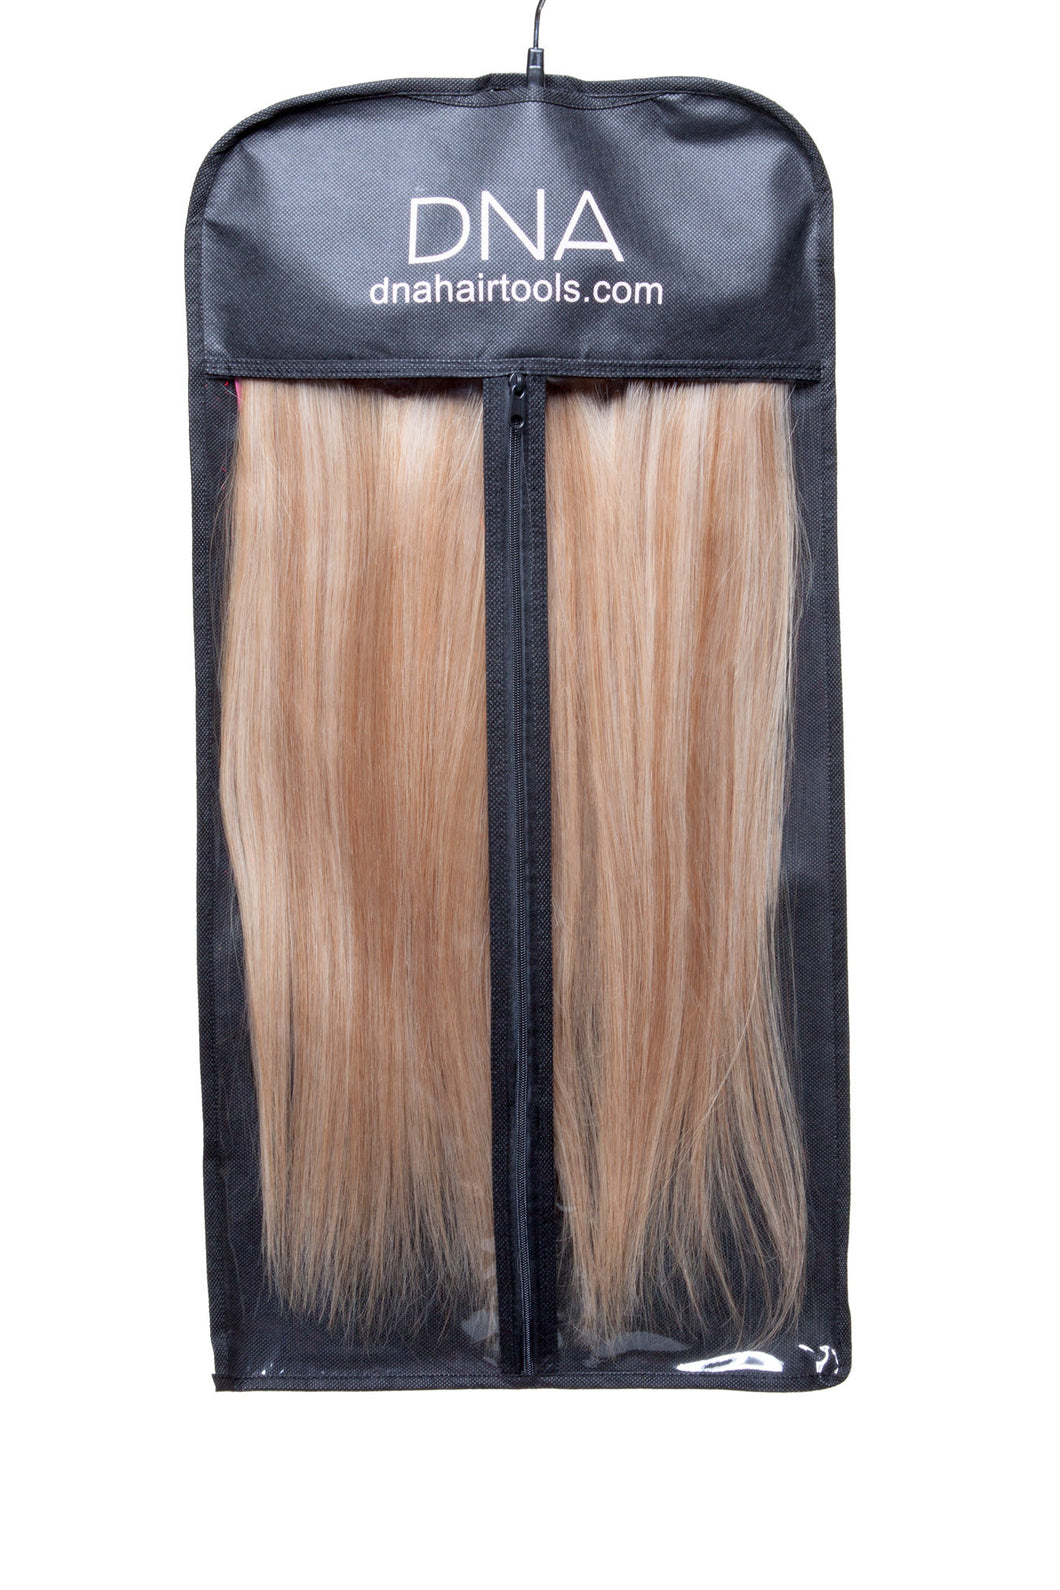 Protective Travel Hair Extensions Case with Hanger